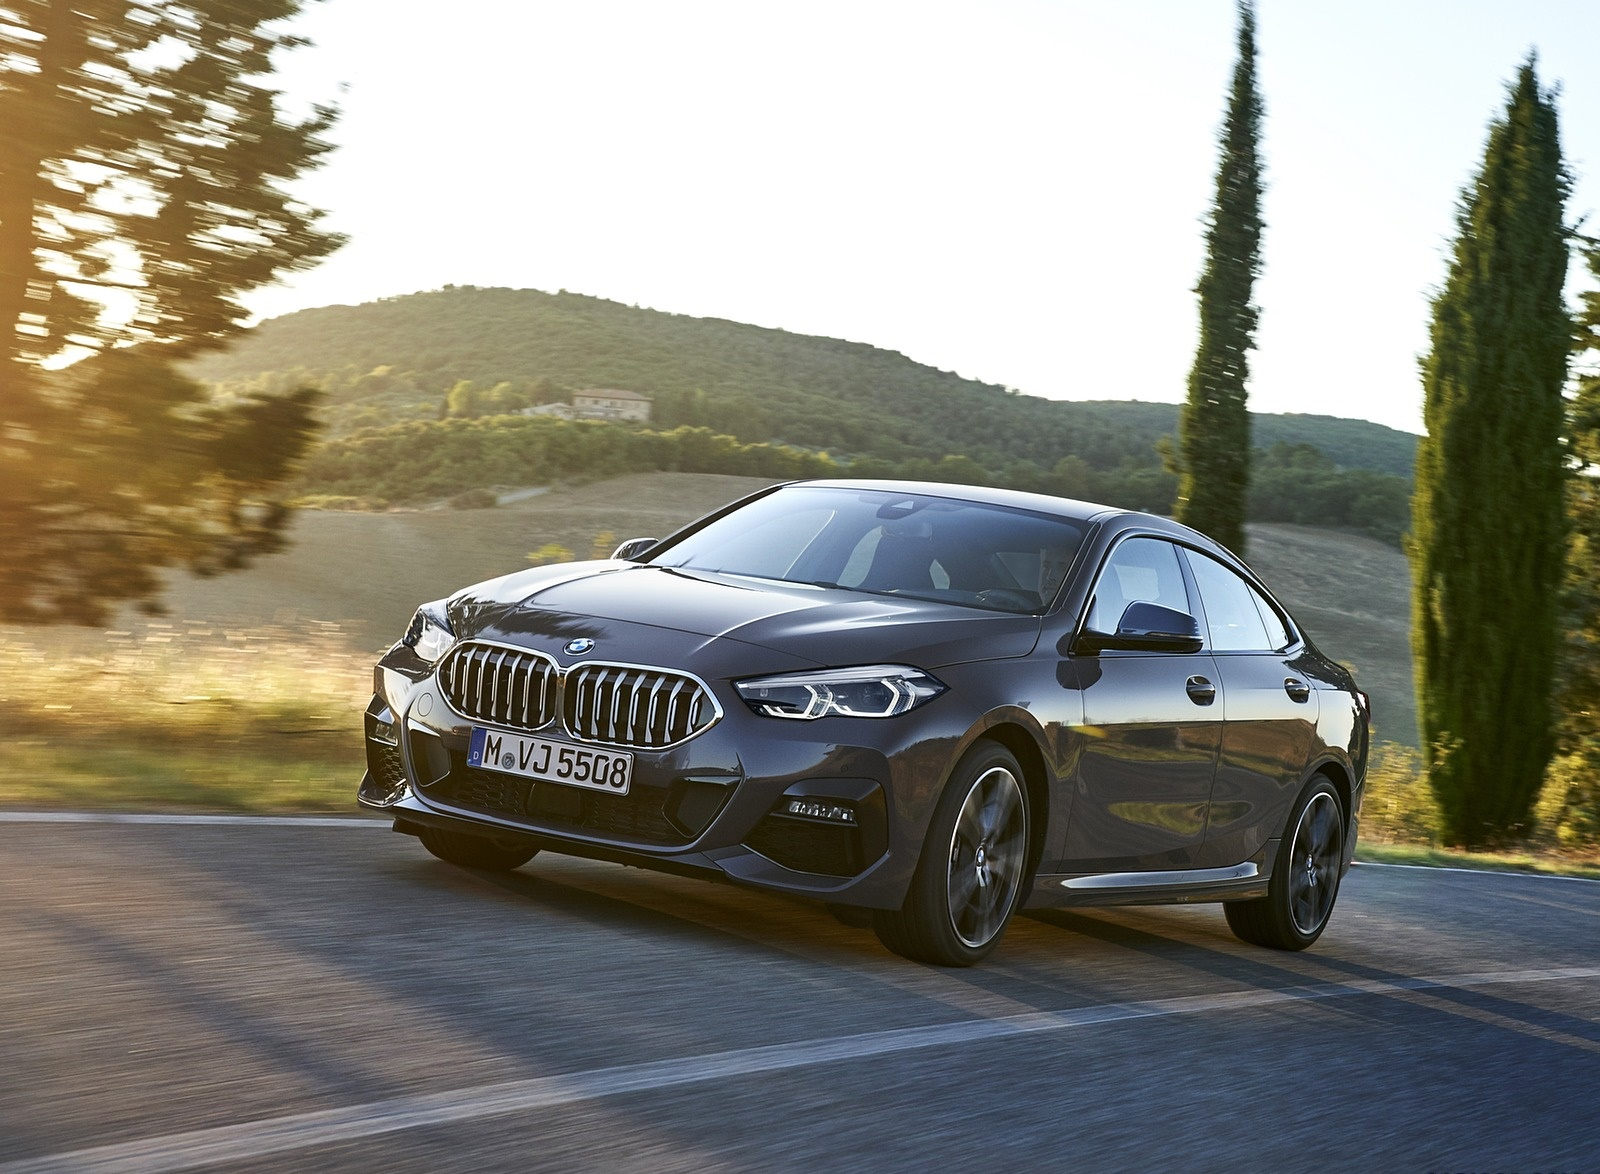 2020 BMW 2 Series 220d Gran Coupe M Sport (Color: Storm Bay Metallic) Front Three-Quarter Wallpapers (3)